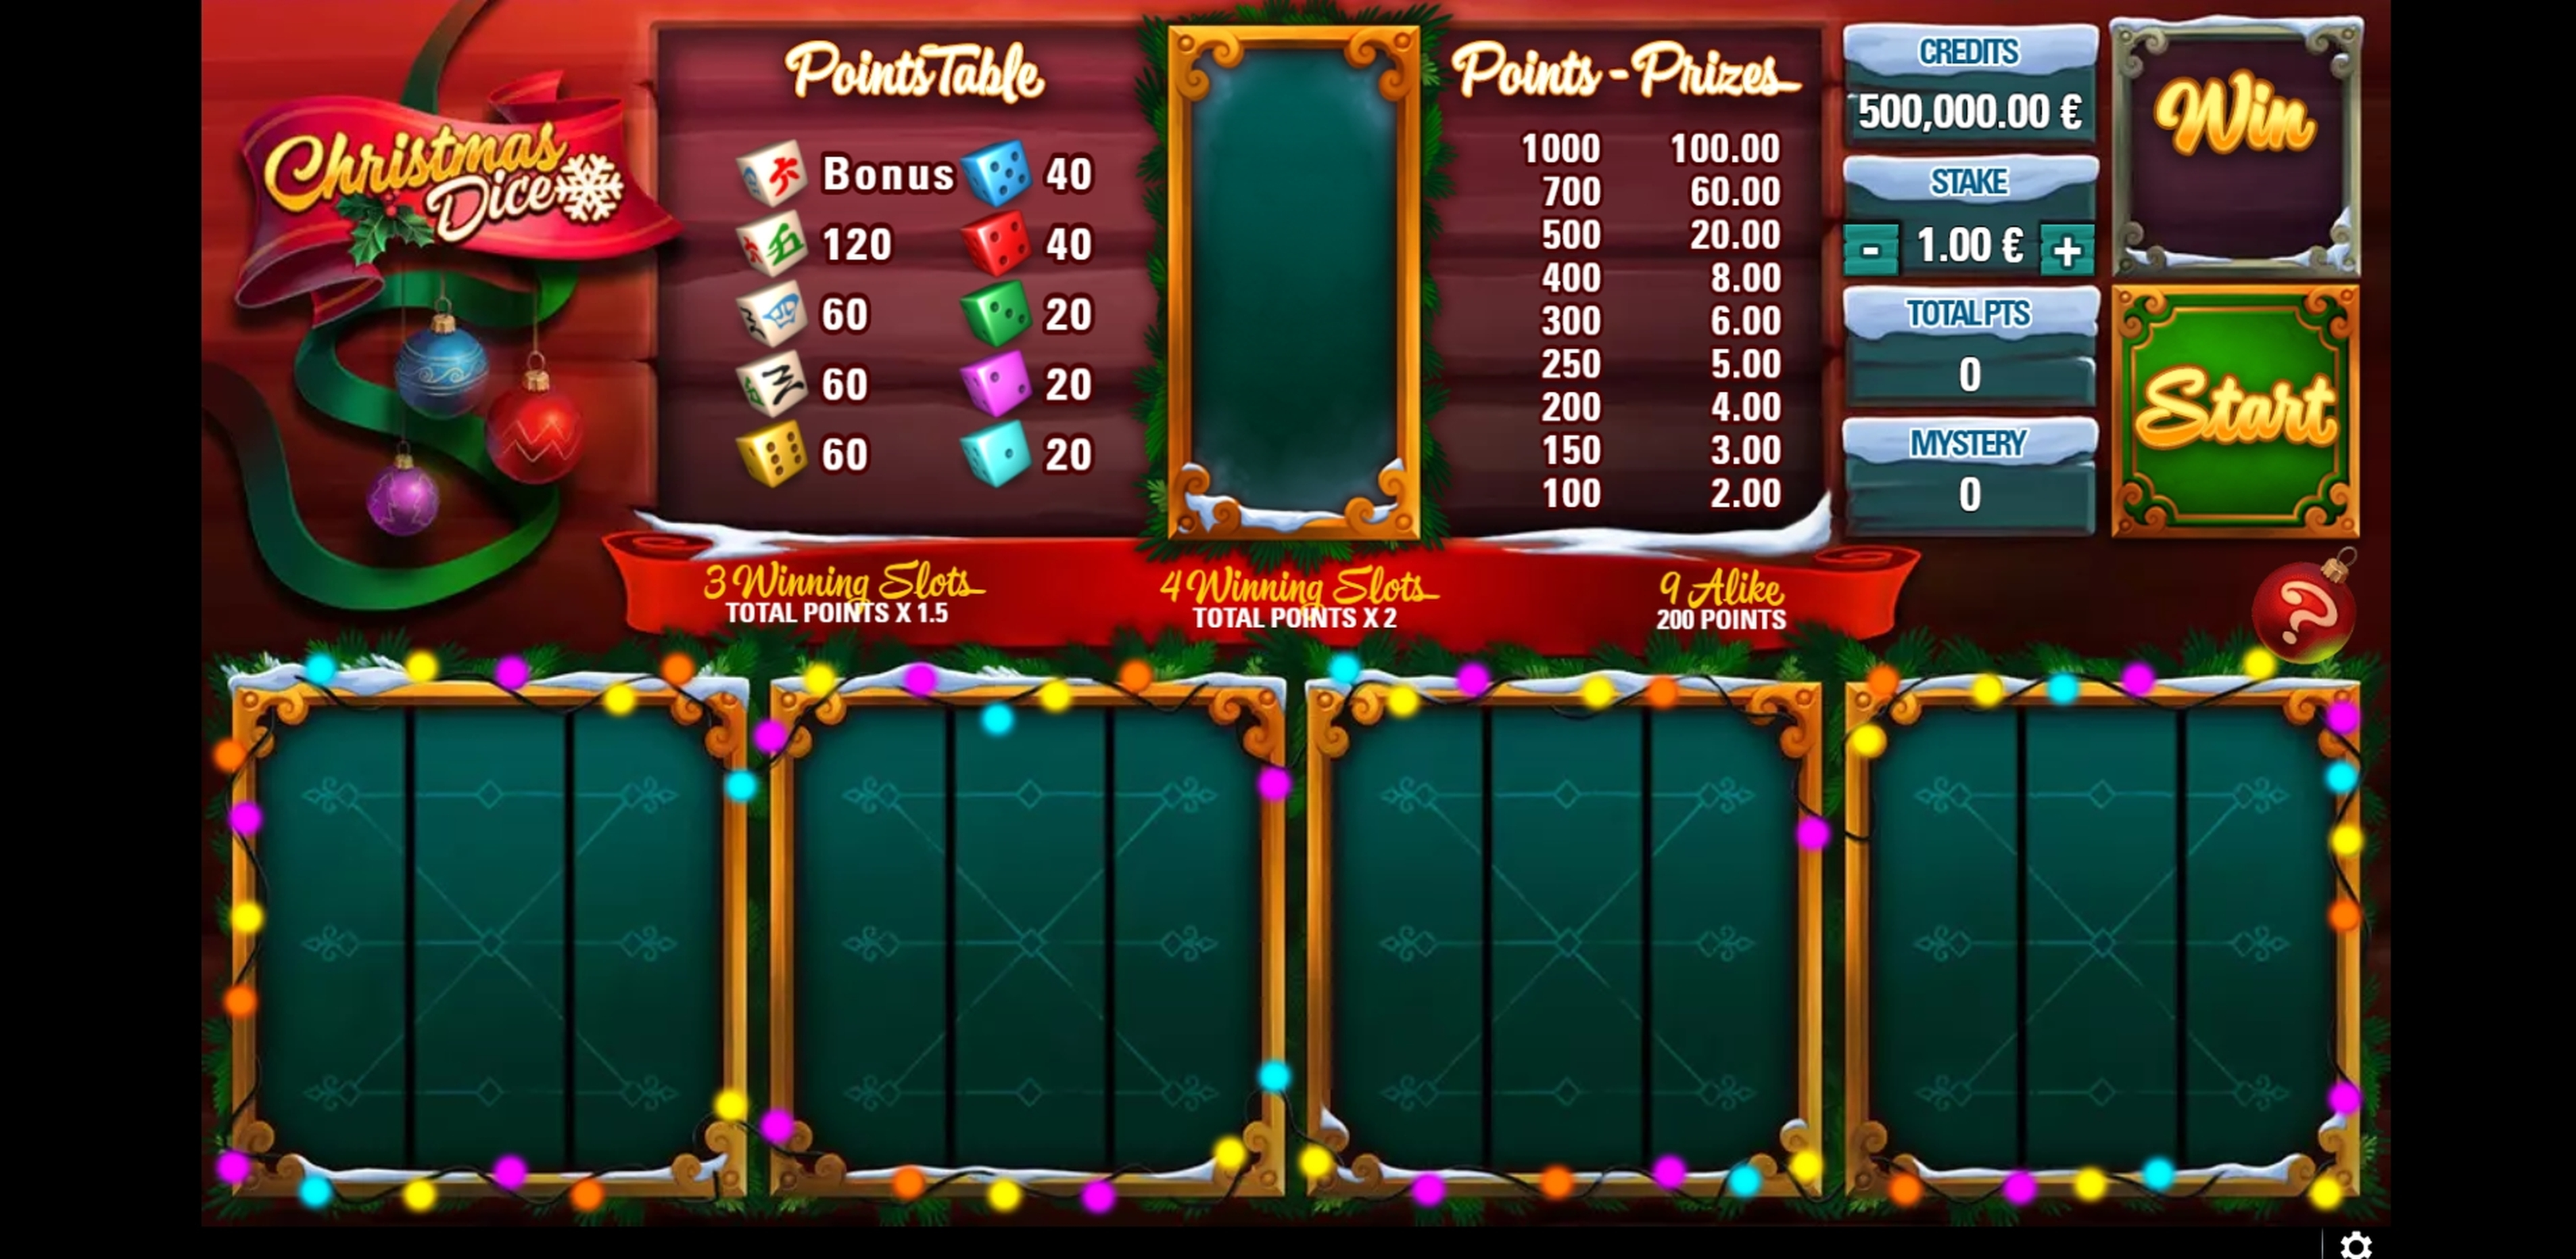 Reels in Christmas Dice Slot Game by GAMING1